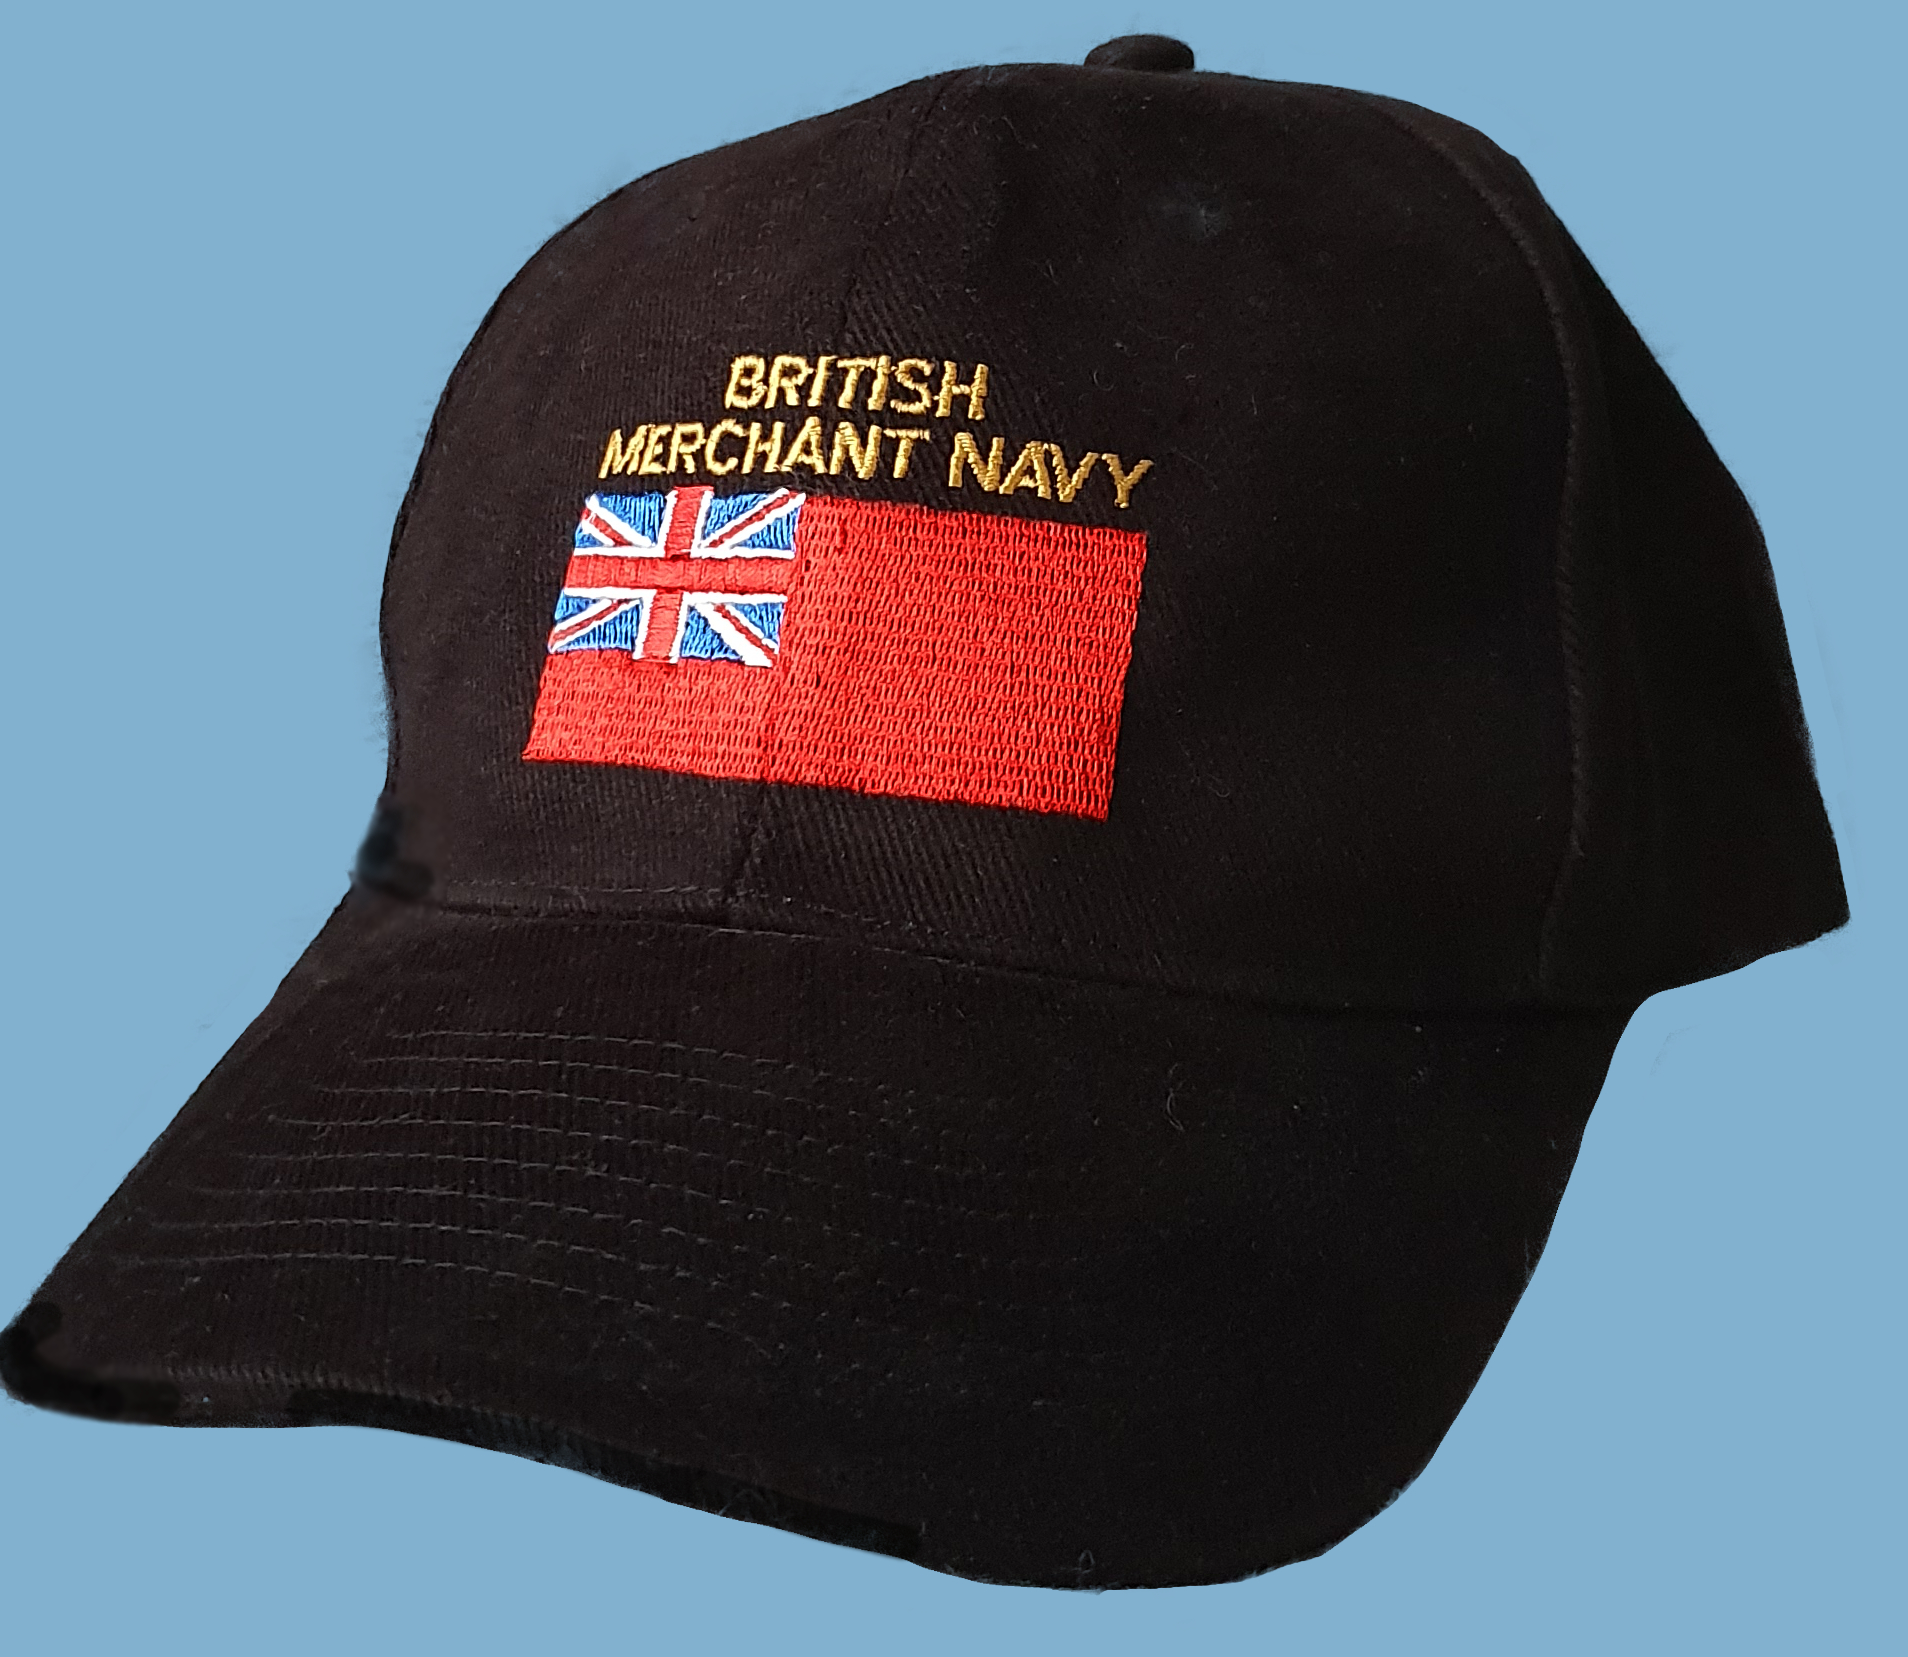 313a Red Ensign baseball cap